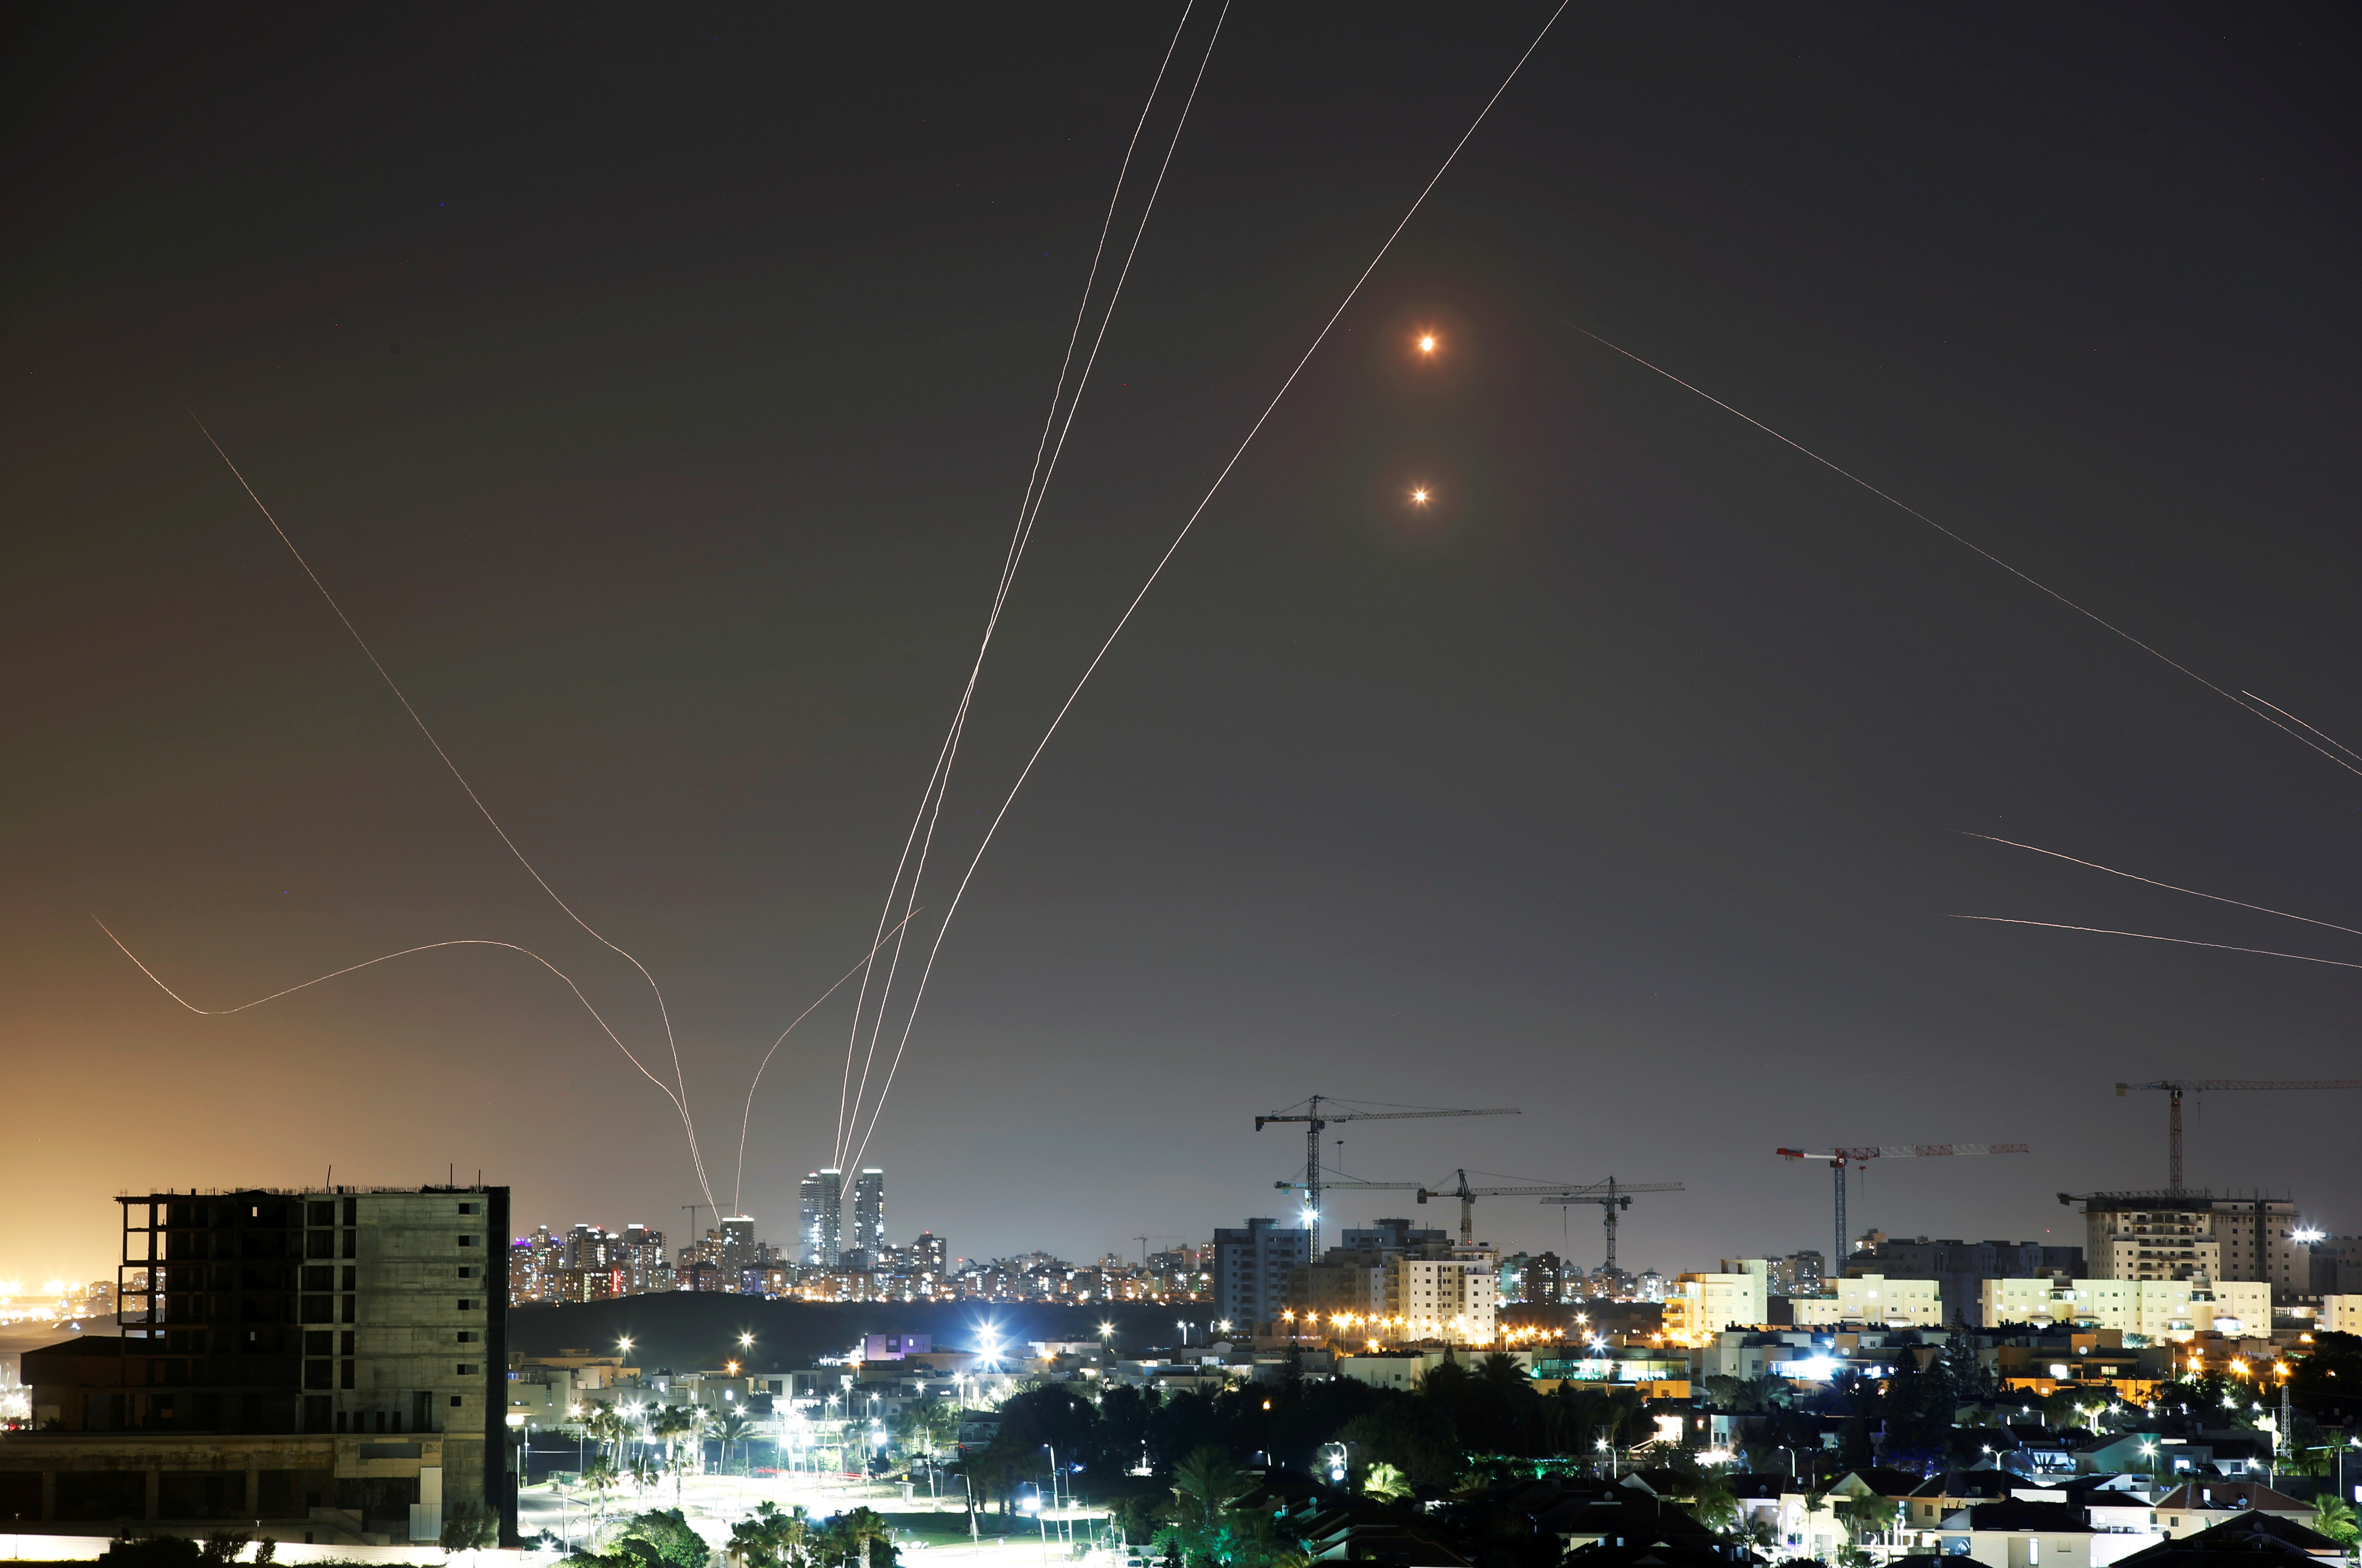 Streaks of light are seen as Israel's Iron Dome anti-missile system intercepts rockets launched from the Gaza Strip towards Israel, as seen from Ashkelon, Israel May 11, 2021. REUTERS/Amir Cohen